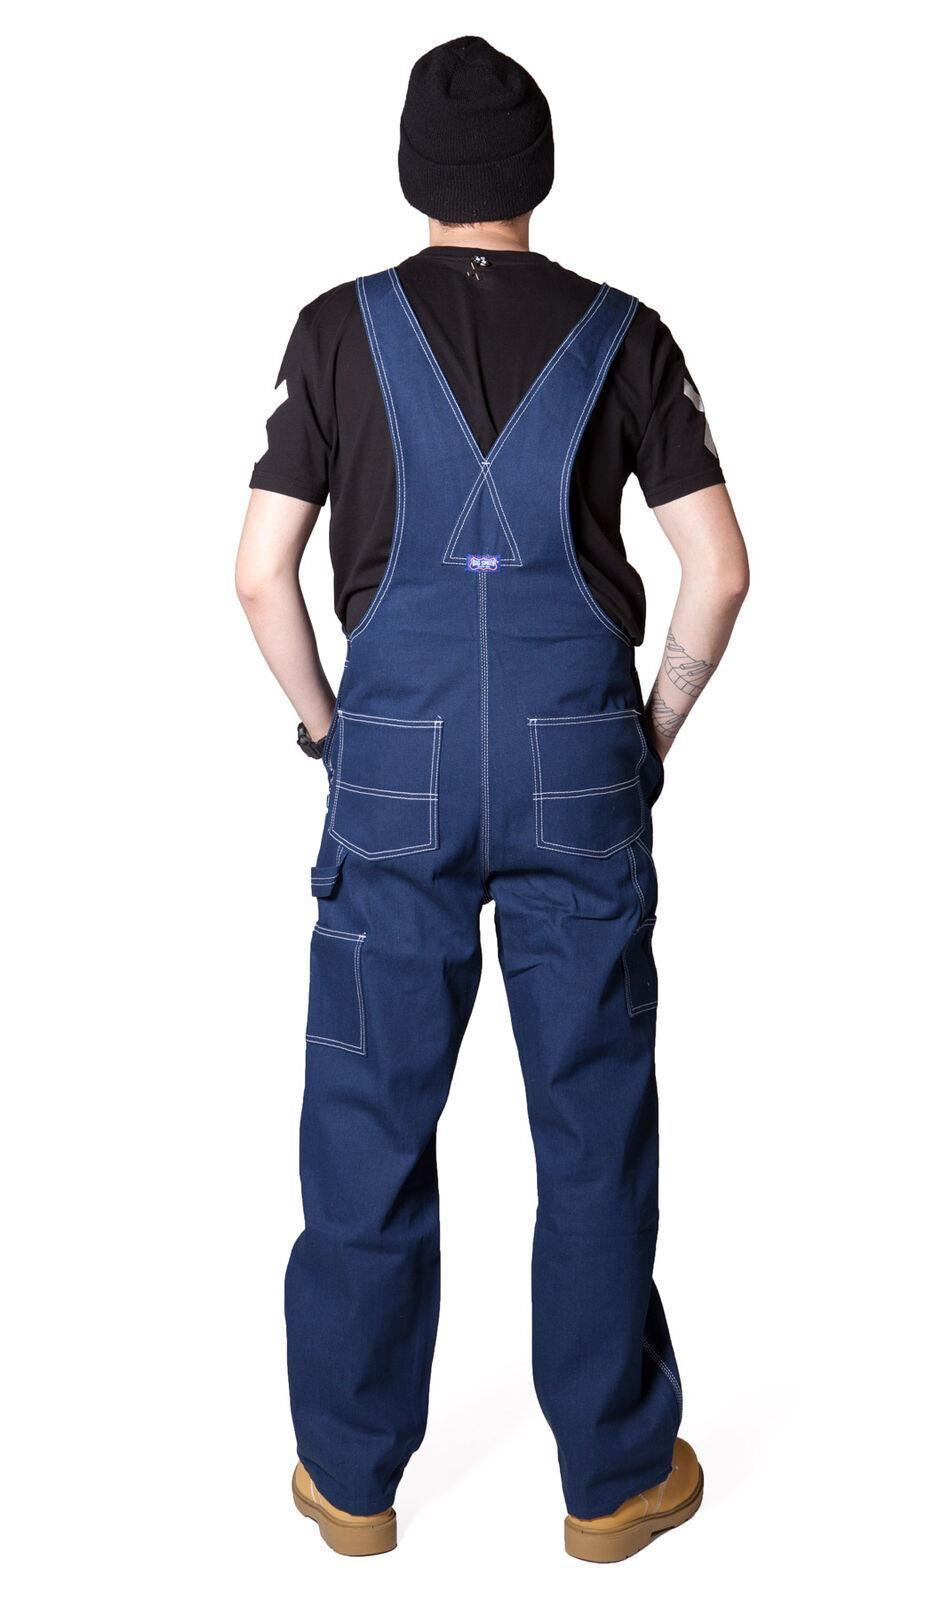 Rear pose wearing 'Big Smith' brand indigo bib overalls from Dungarees Online.